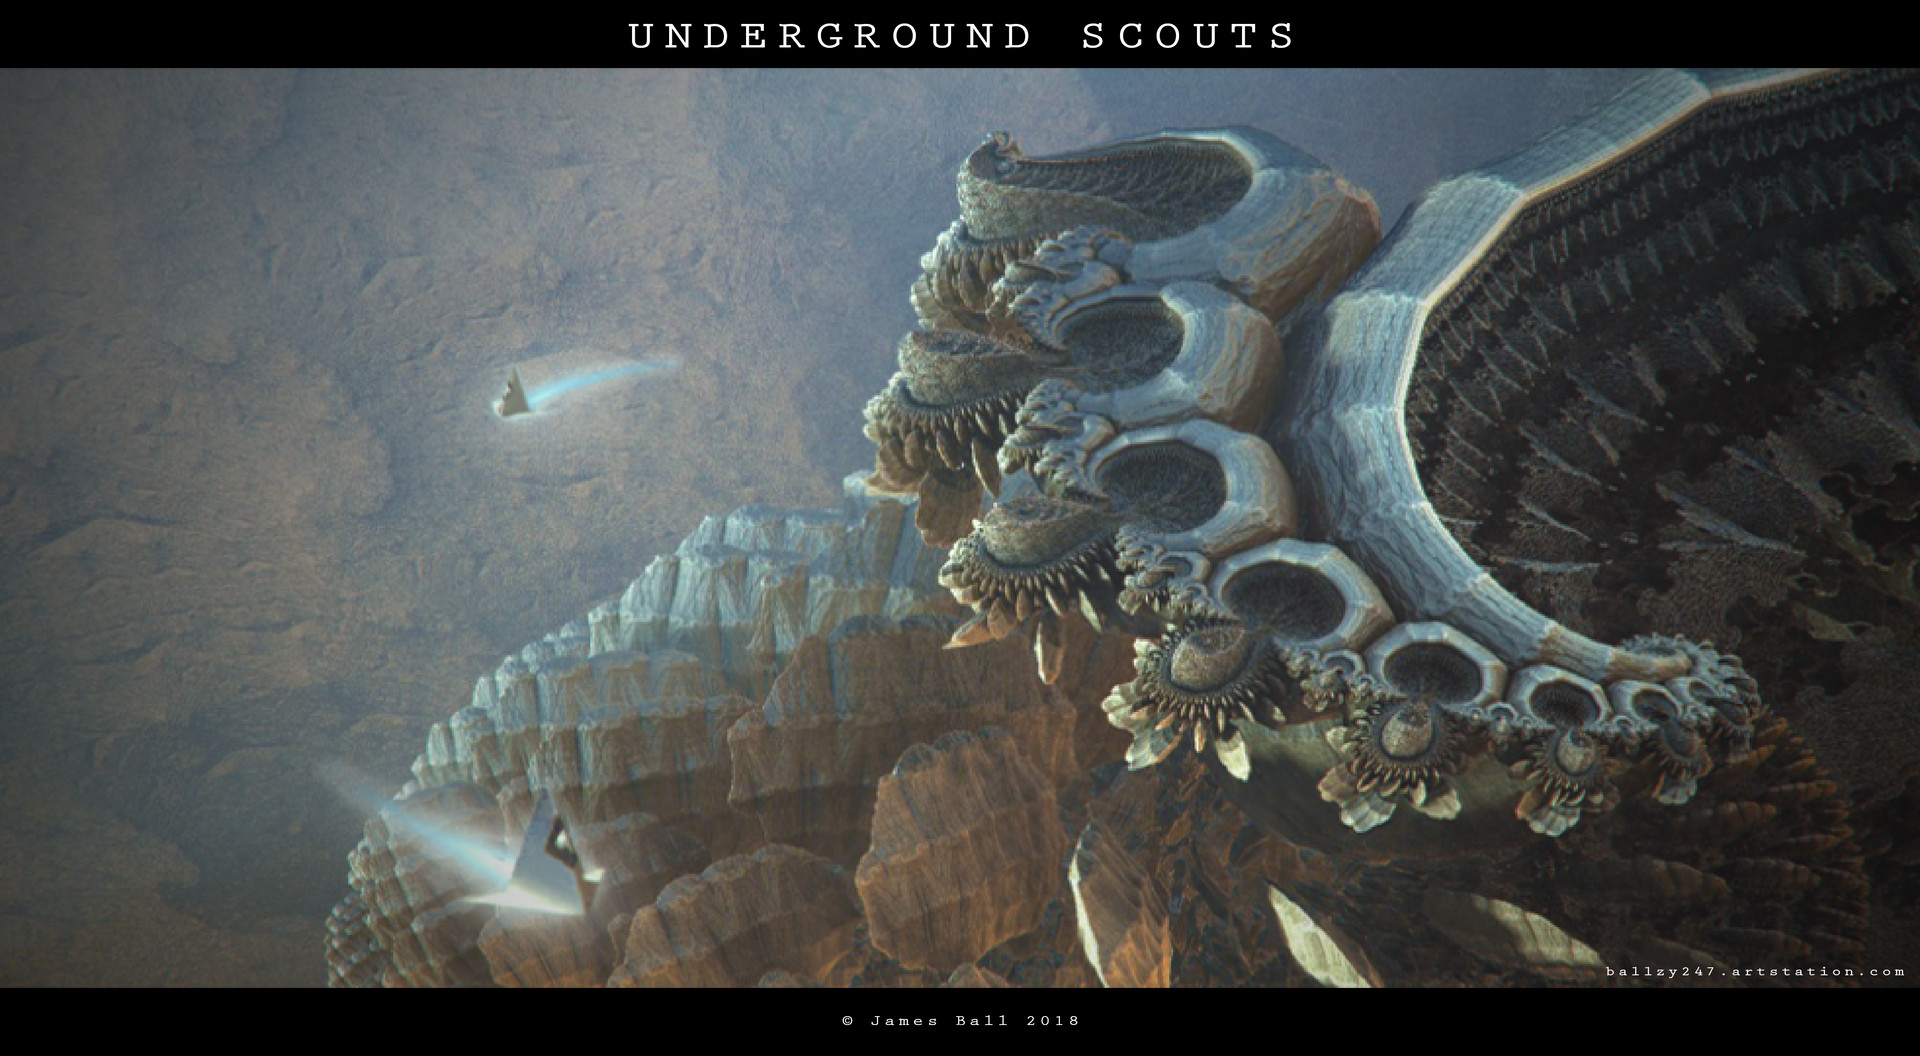 James ball underground scouts final by james ball